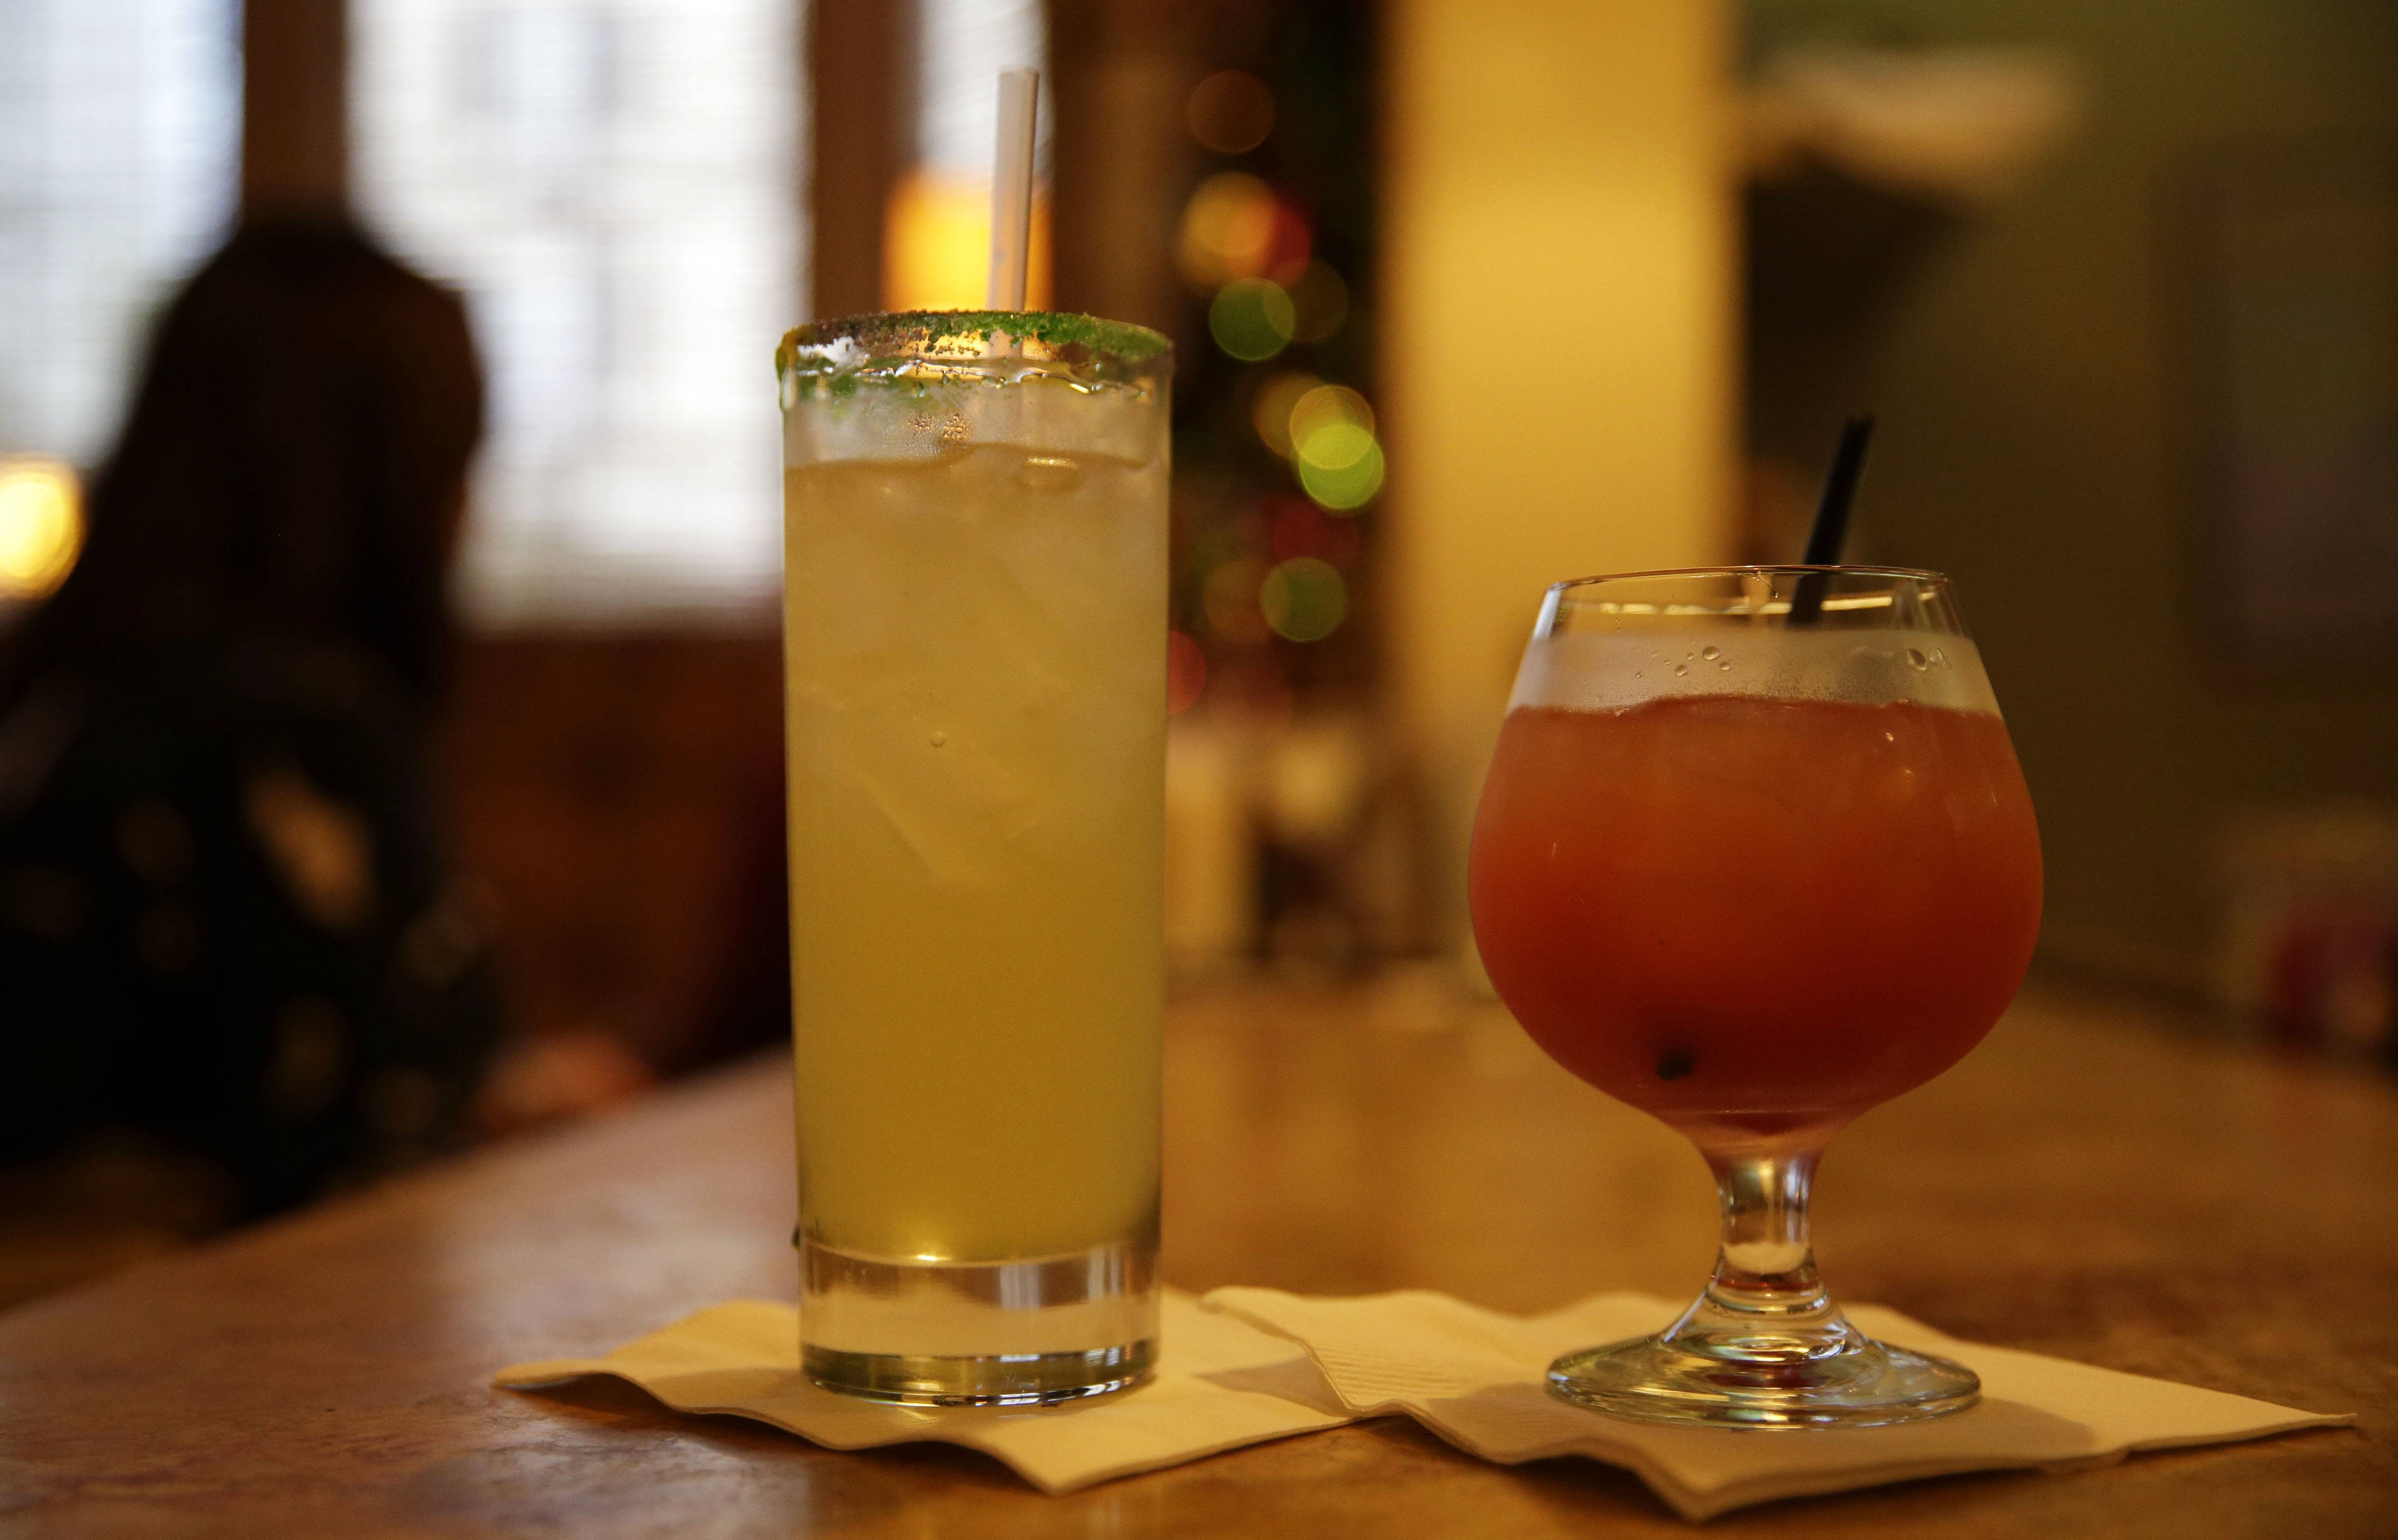 Emeril's Delmonico in New Orleans offers special drinks during Mardi Gras season. The king's cup, left, is made with vanilla vodka, coconut rum, pineapple and prosecco and the Cajun storm is a concoction of New Orleans Cajun Spice rum, house-made grenadine, passion fruit and lemon.